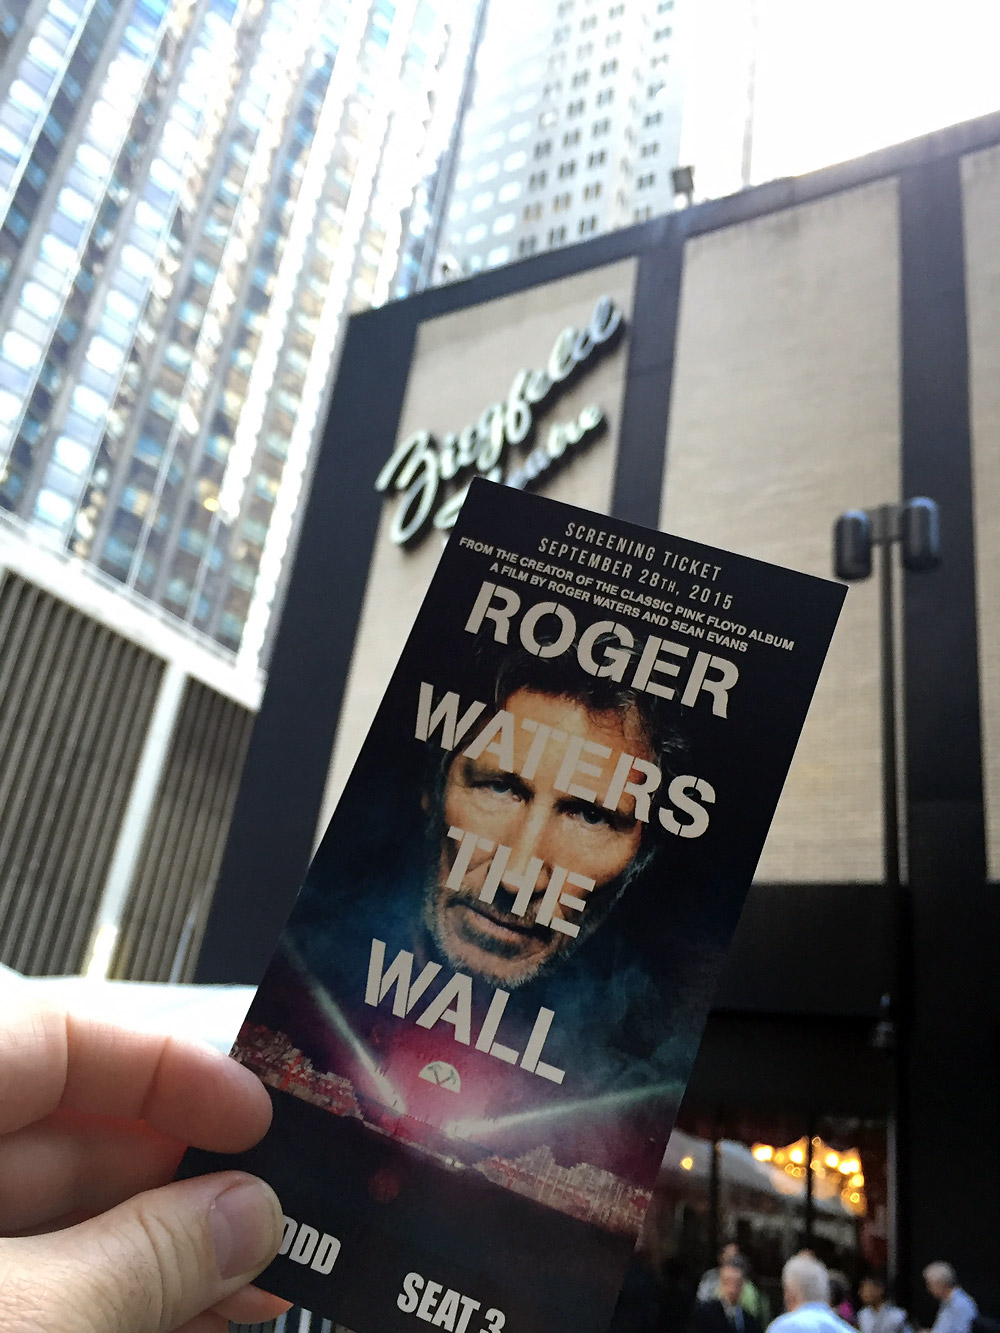 Outside the Ziegfeld Theater